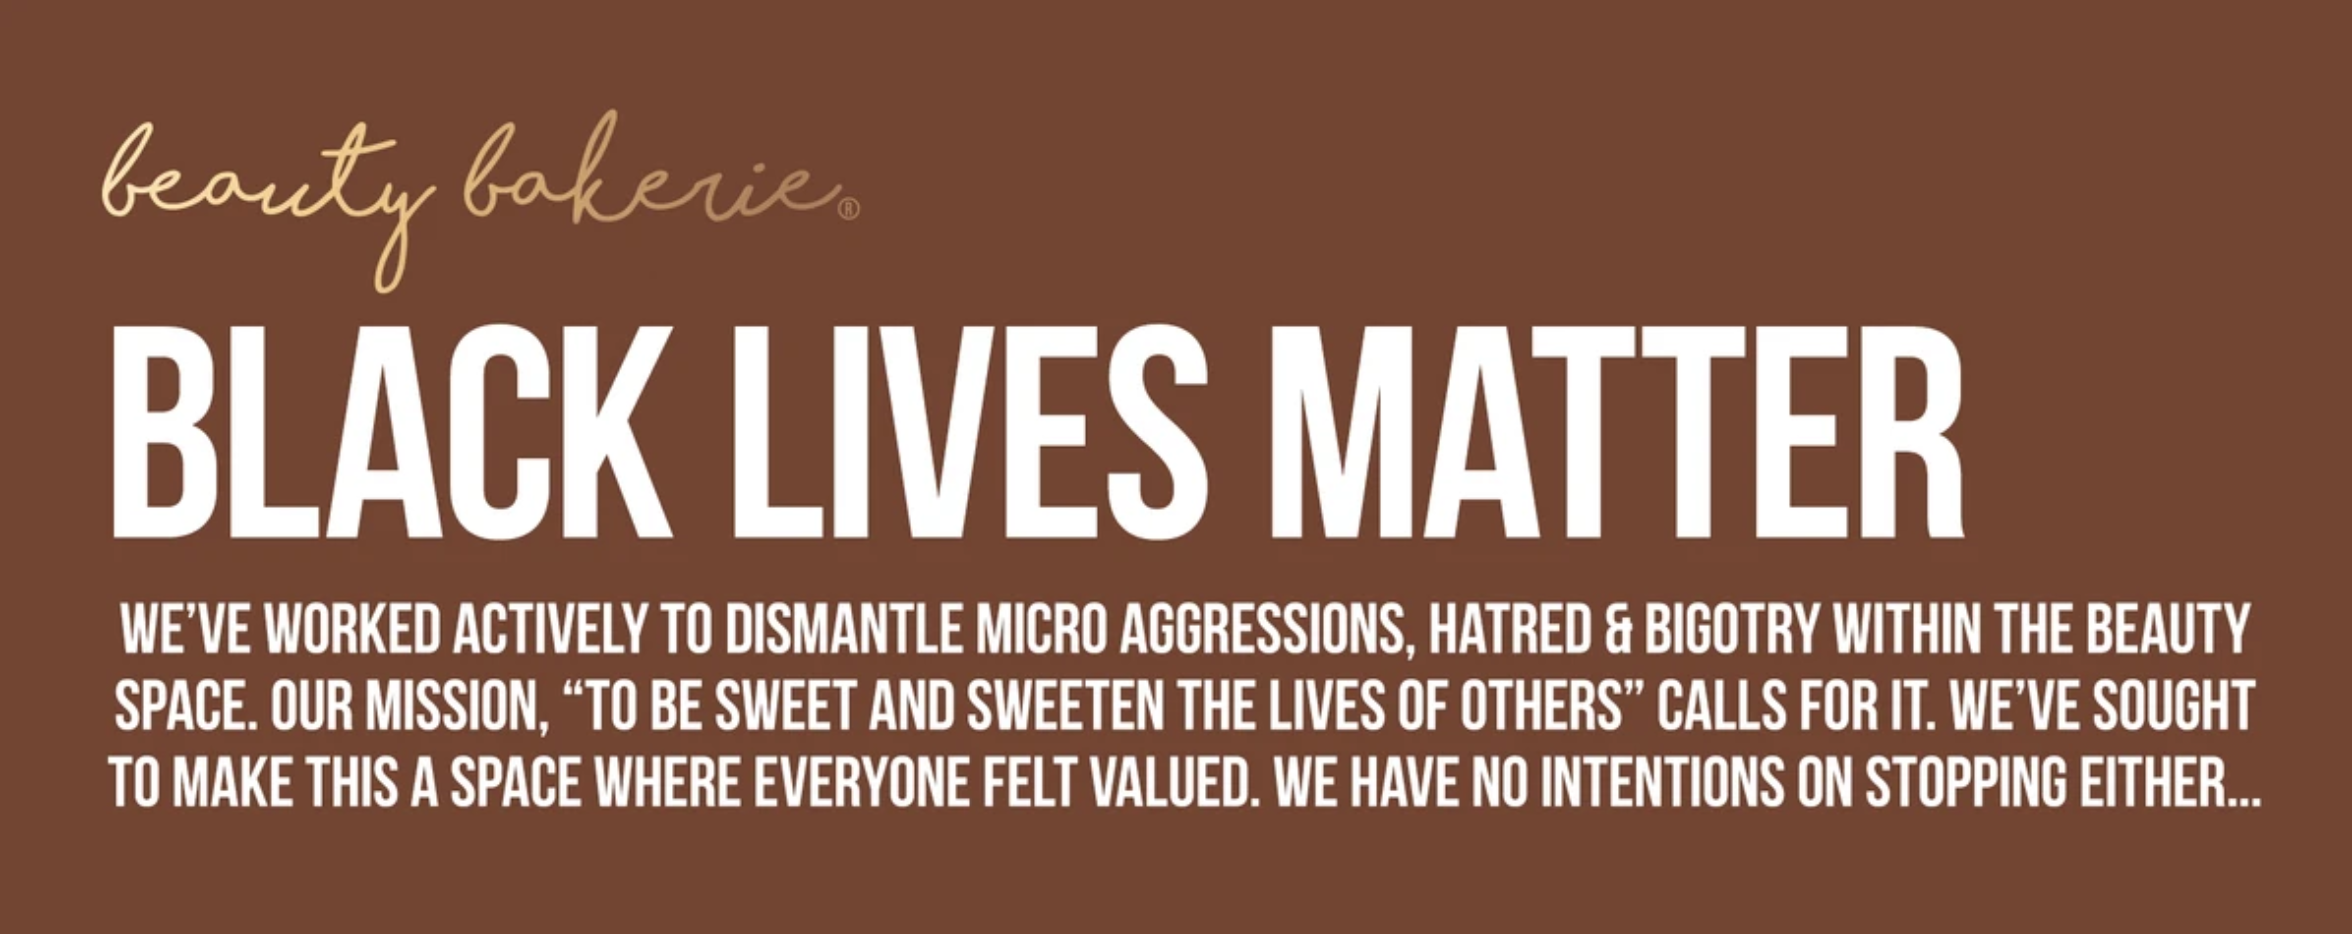 A statement from Beauty Bakerie about the Black Lives Matter movement.